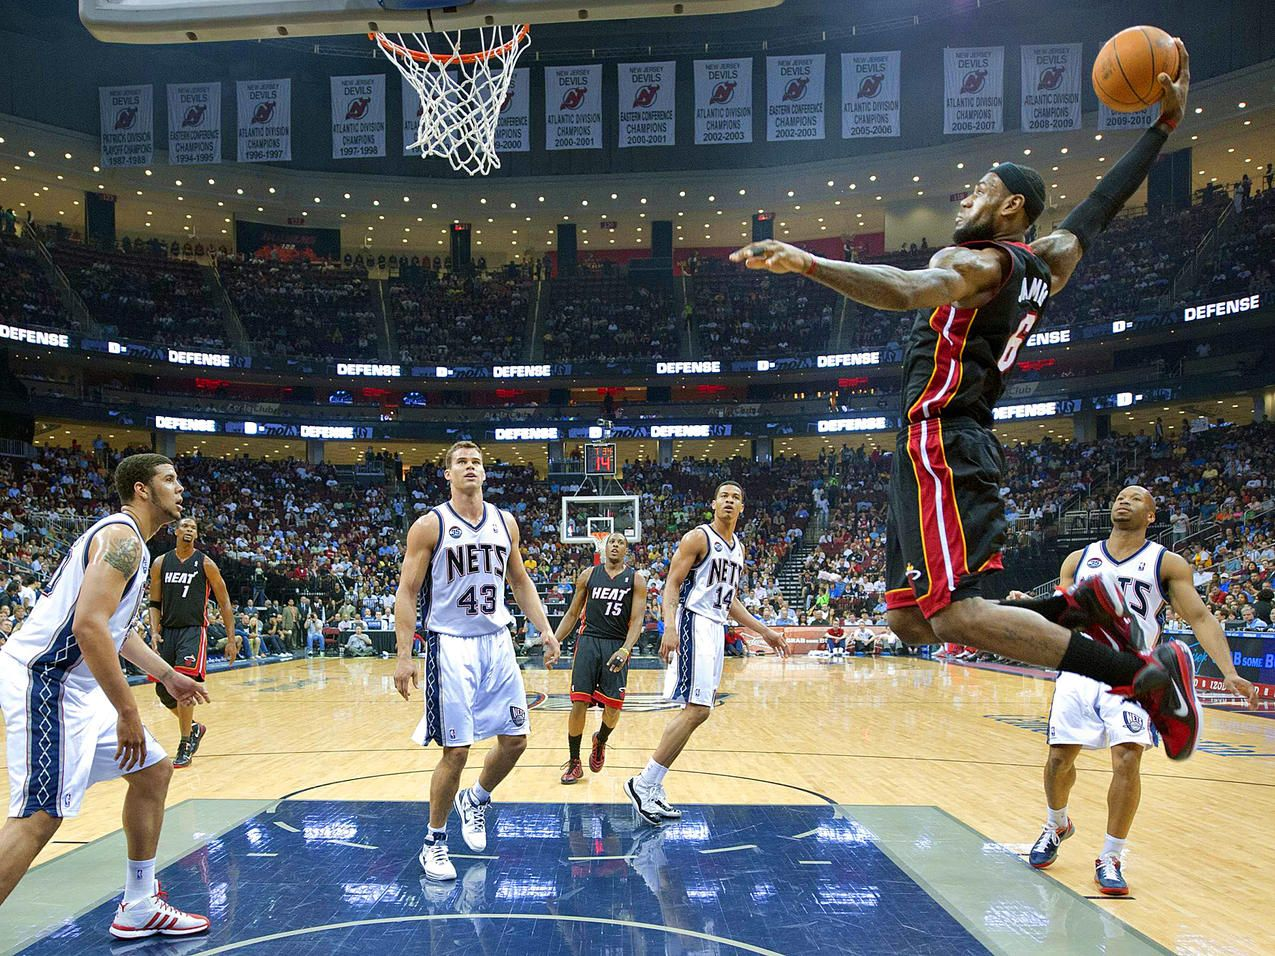 lebron james dunk pictures 2012 hd Vertical jump